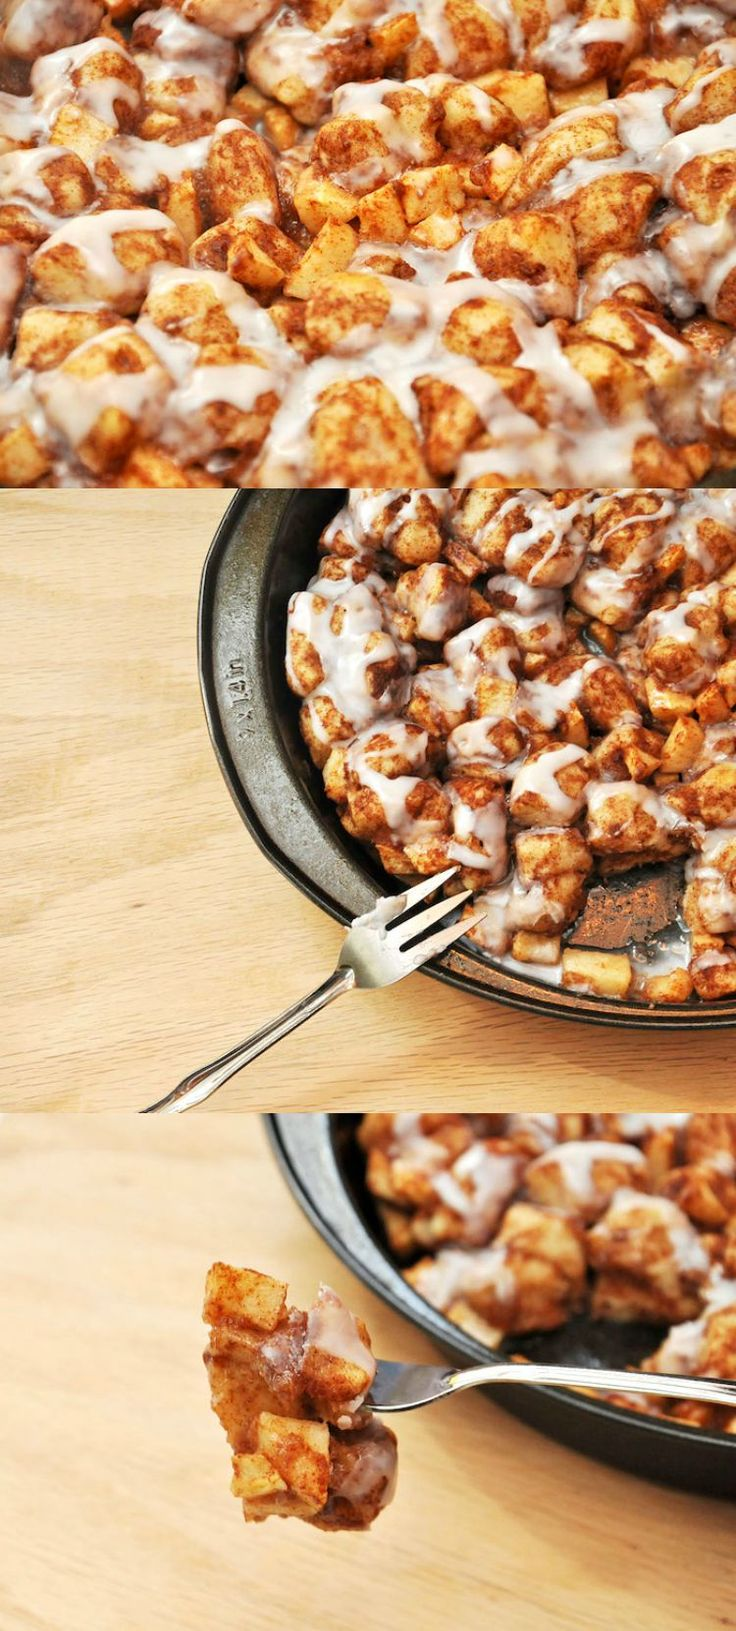 This delicious apple cinnamon roll monkey bread recipe is the yummiest breakfast snack or the best treat after a hearty dinner.